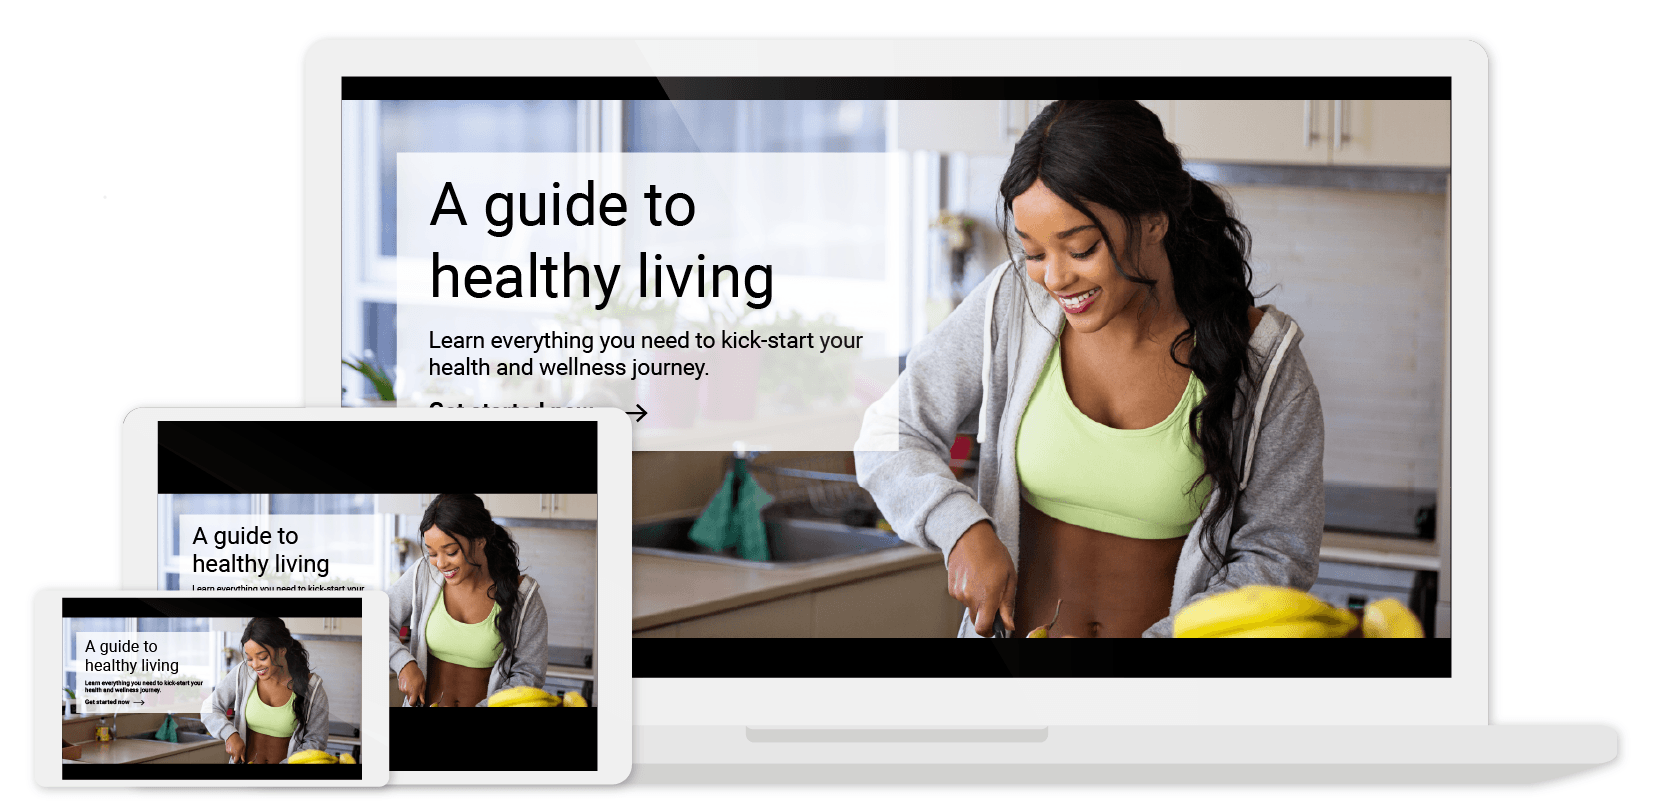 Articulate Storyline health and wellness cover page shown on cellphone, tablet and laptop